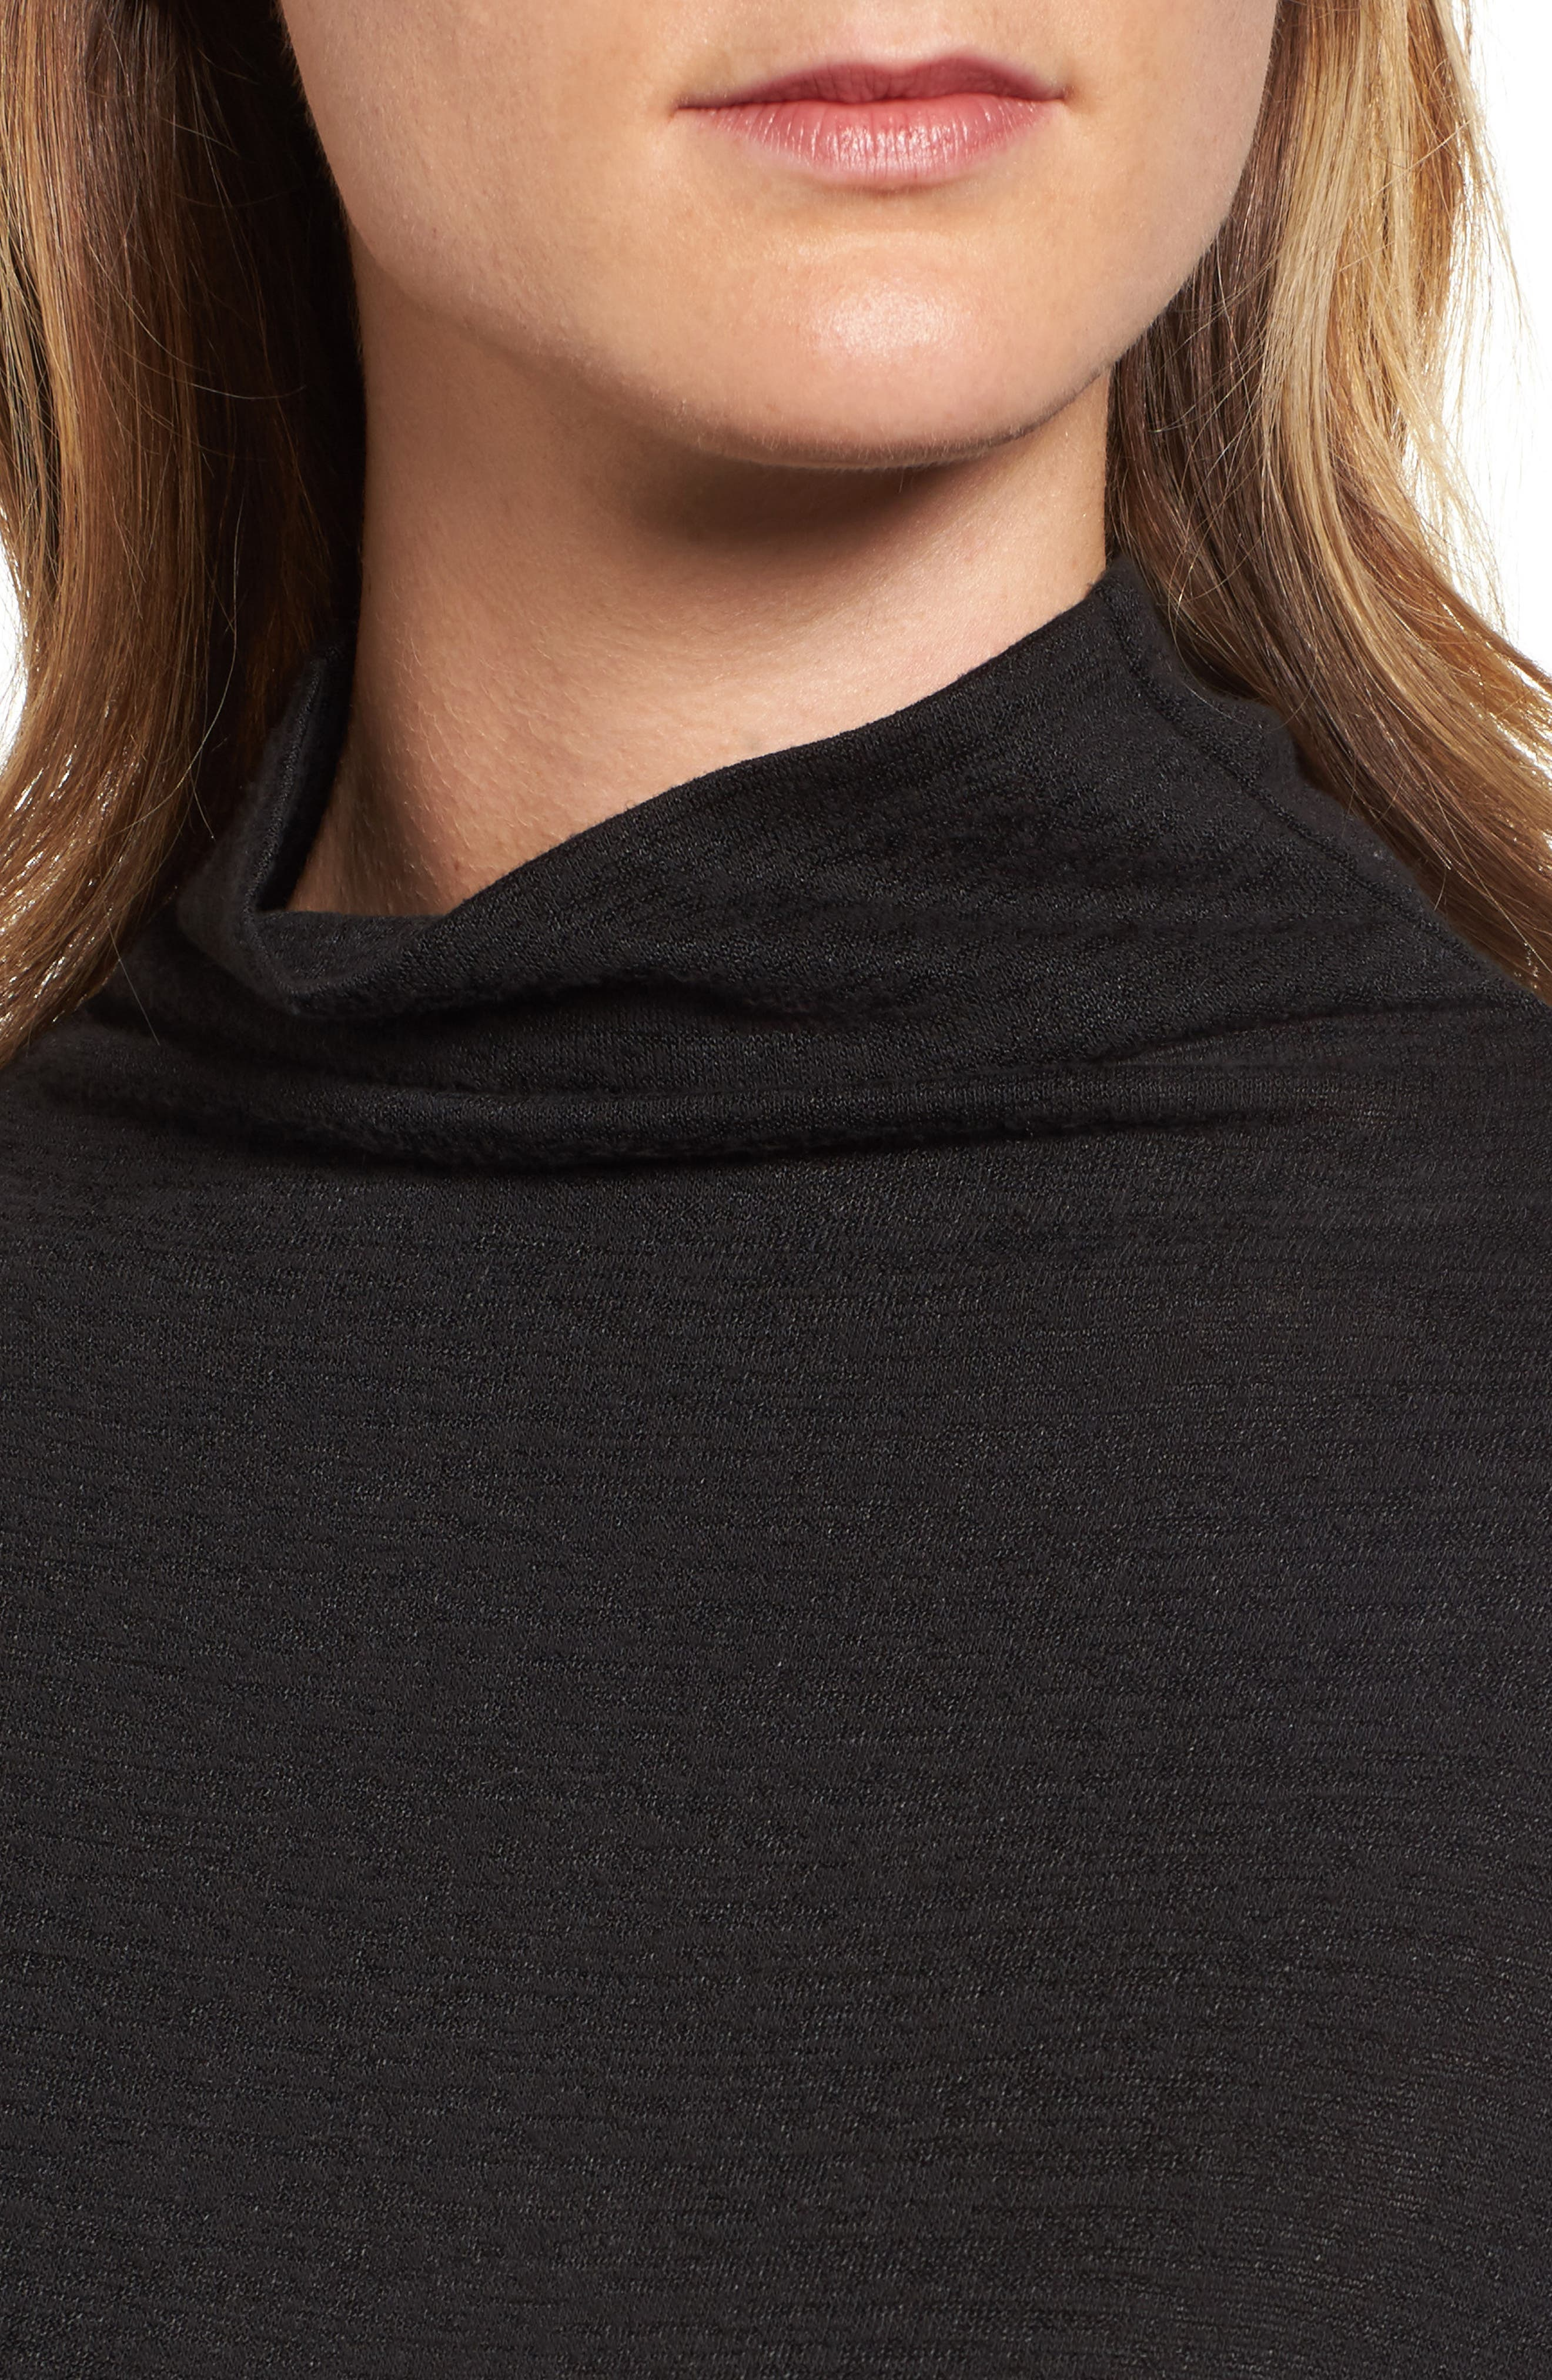 Every Occasion Mockneck Top,                             Alternate thumbnail 4, color,                             004